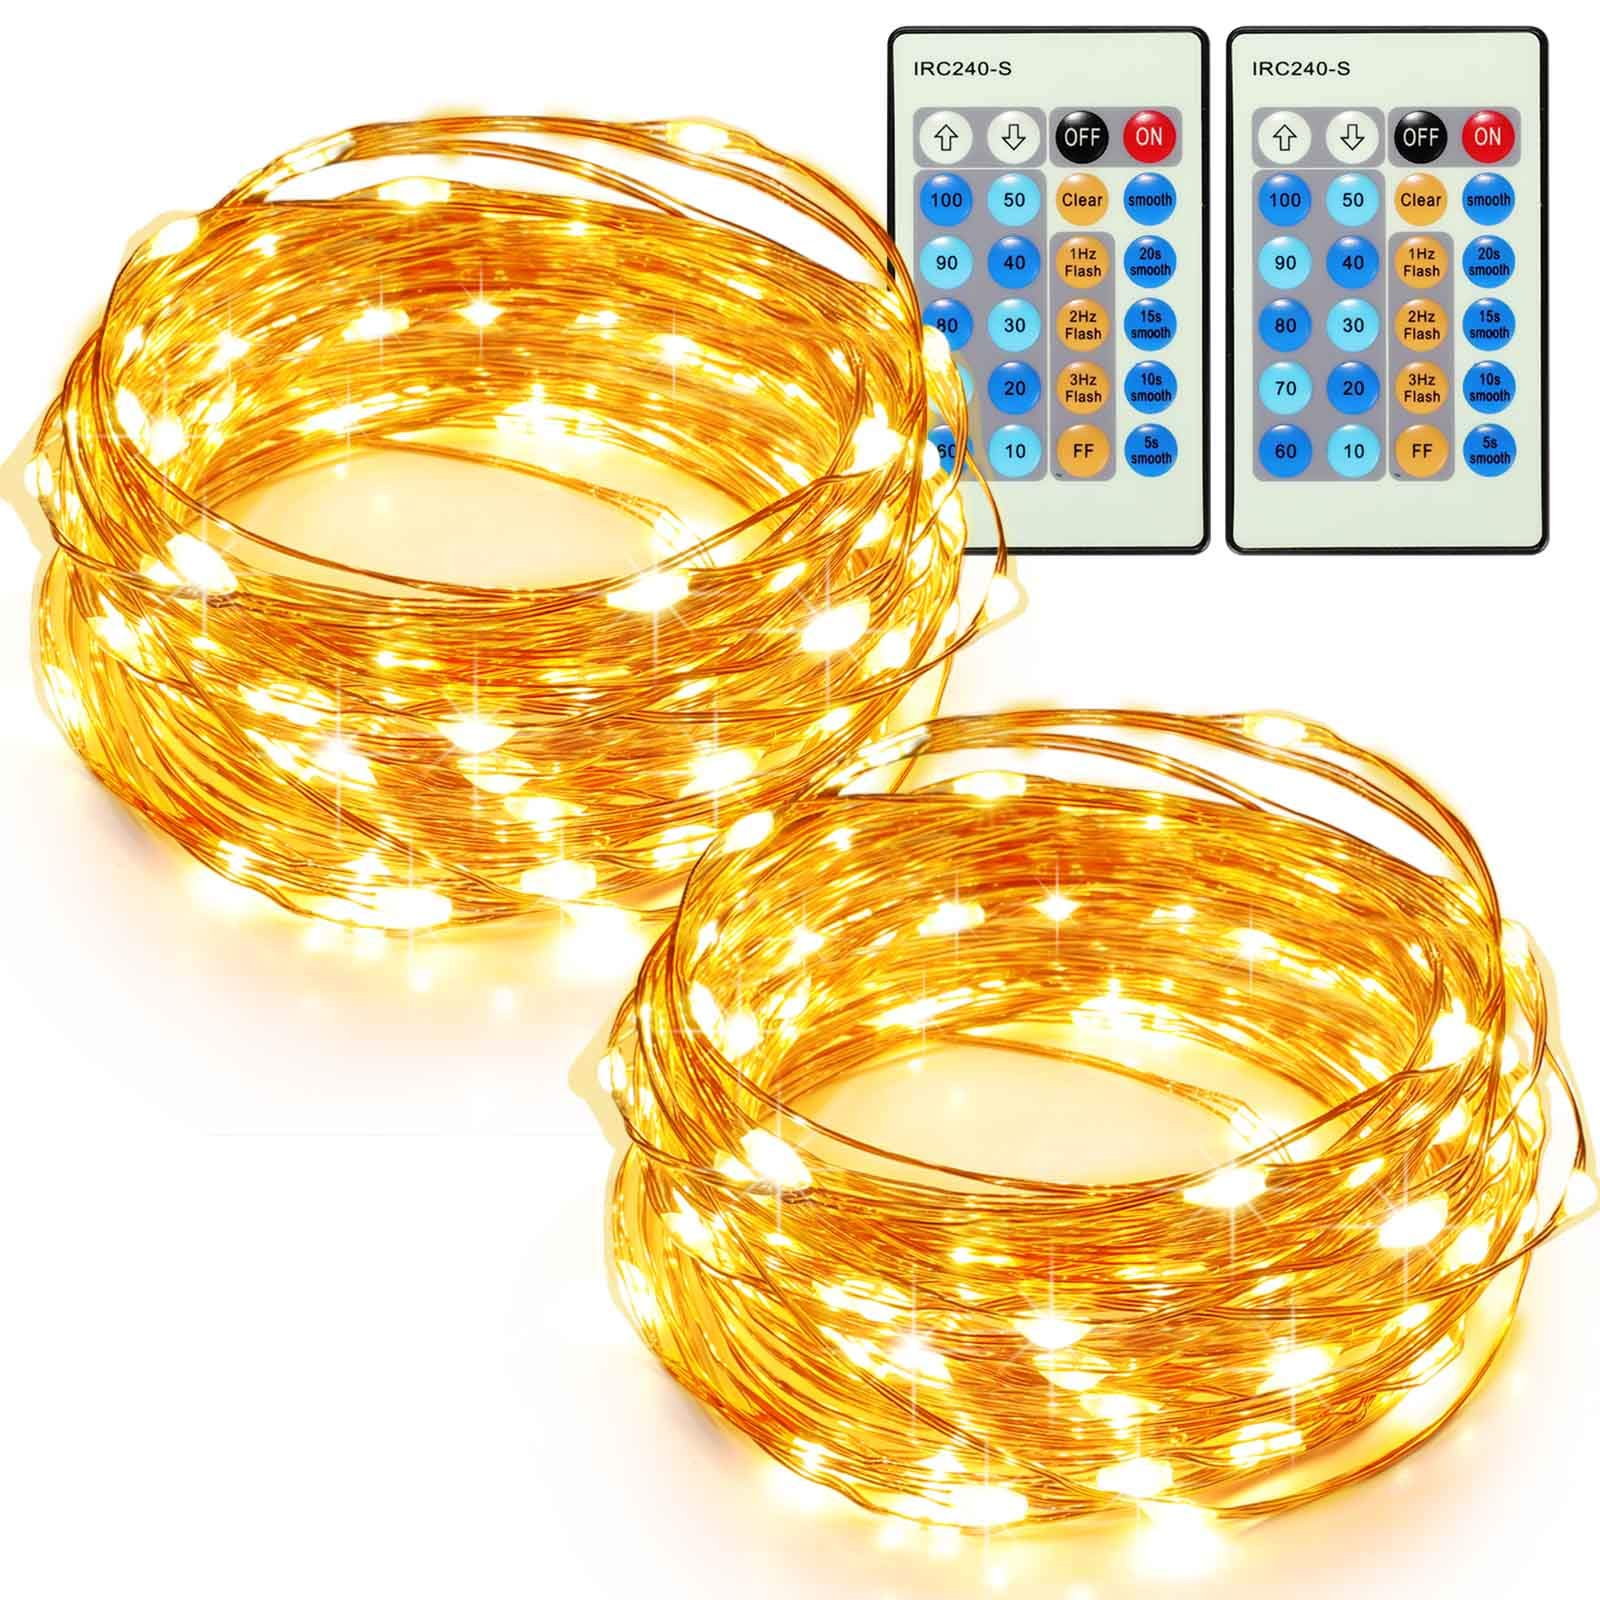 TaoTronics 33ft 100 LED String Lights Plug In 2 Pack Dimmable with Remote Control, Waterproof Decorative Lights for Bedroom, Patio, Garden, Gate, Yard, Parties, Wedding(Copper Wire Lights, Warm White)